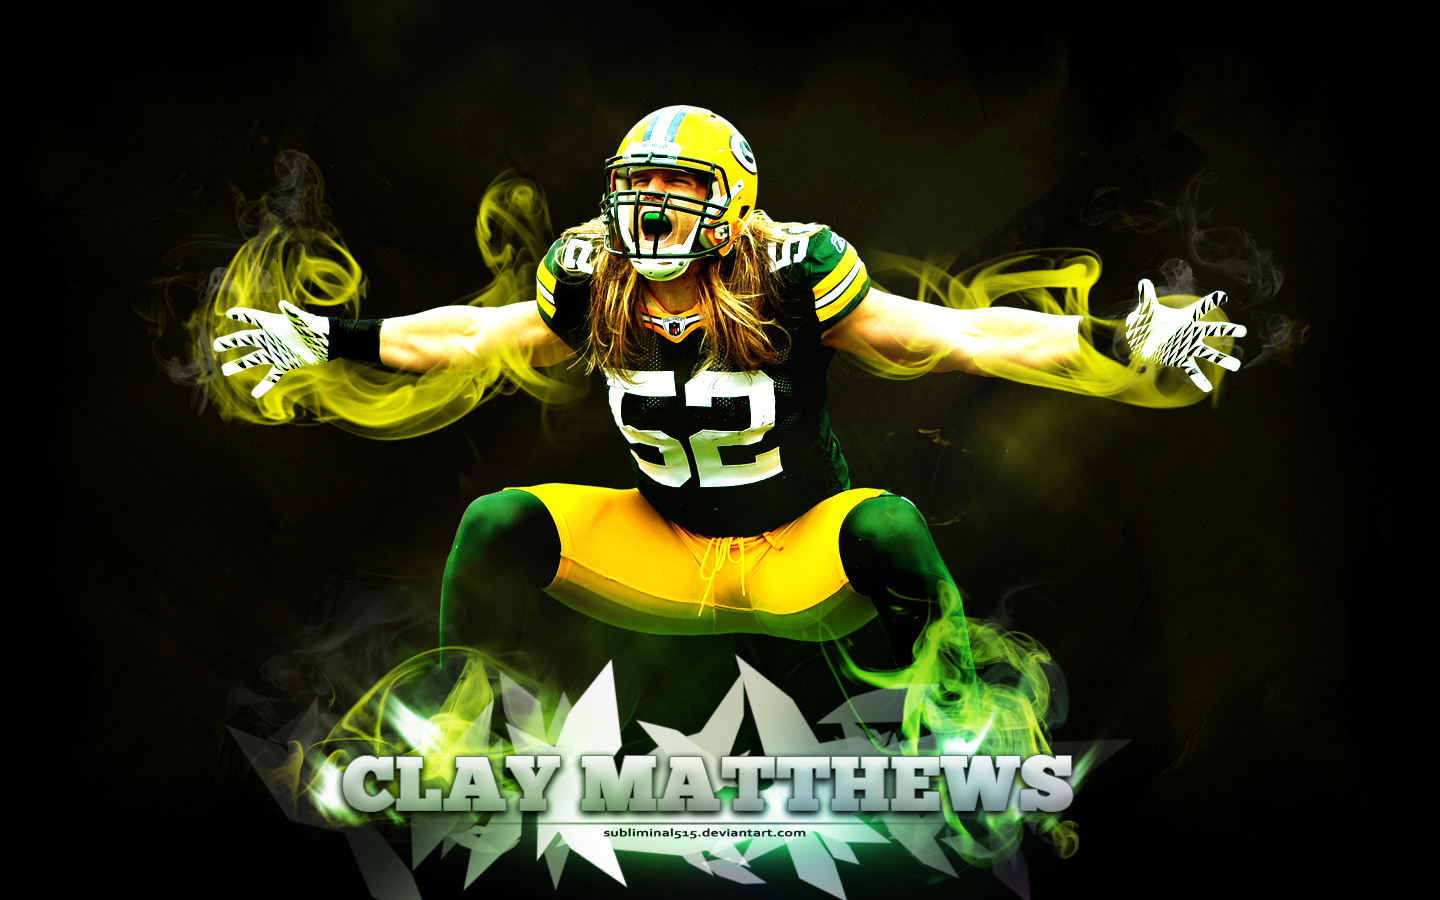 Green bay packers wallpaper hd wallpaper green bay packers pic download voltagebd Image collections